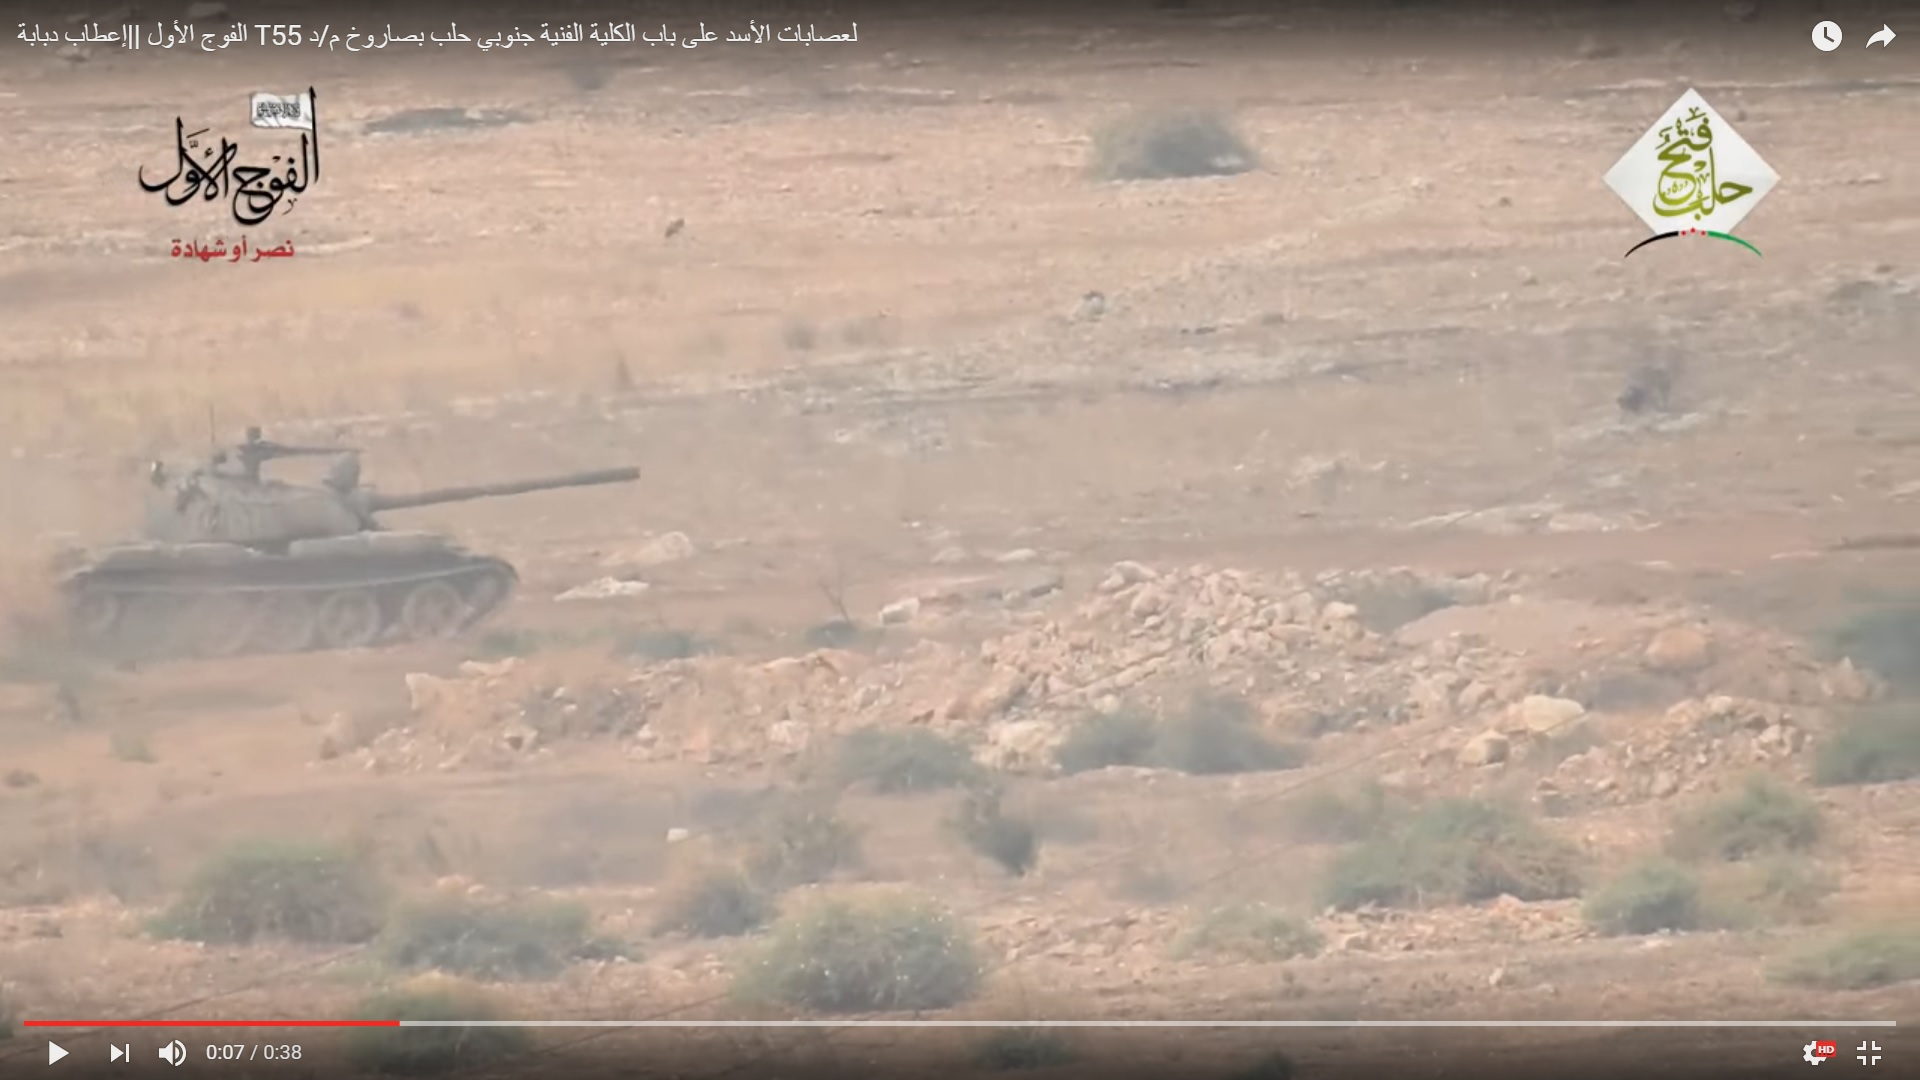 Detailed Analysis Of Battle For Ramouseh Artillery Academy In Western Aleppo - Part 2